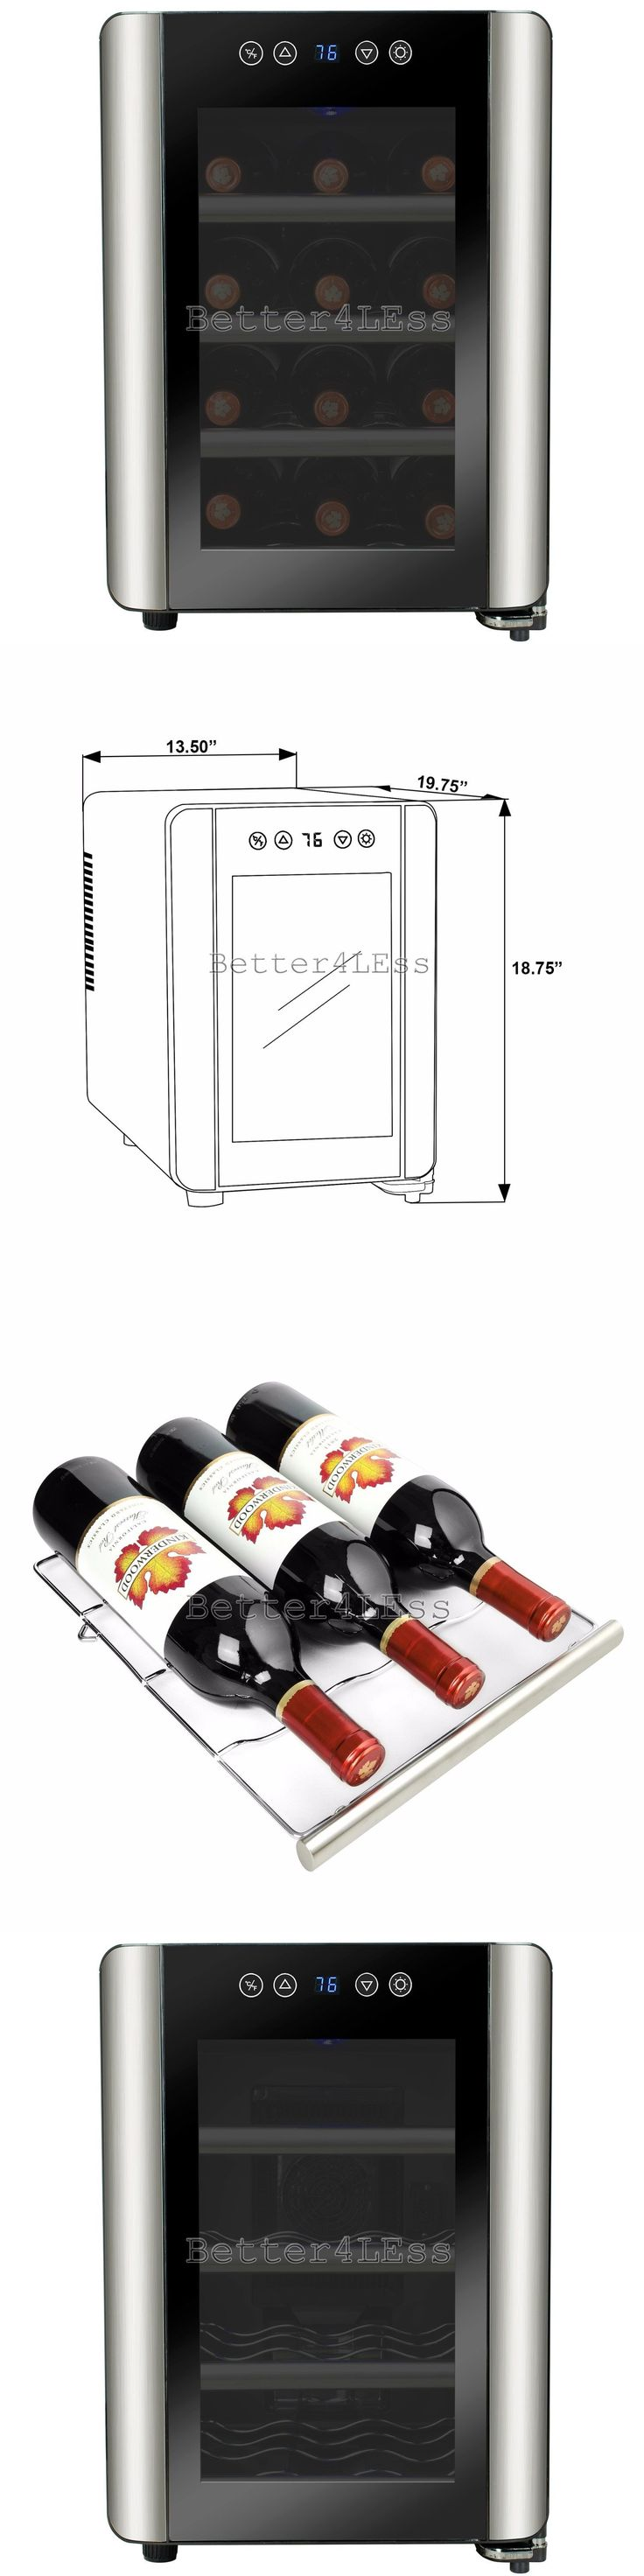 Wine Fridges and Cellars 177750: 12 Bottle Freestanding Stainless Steel With Touch Controls Chiller Wine Cooler -> BUY IT NOW ONLY: $99.99 on eBay!